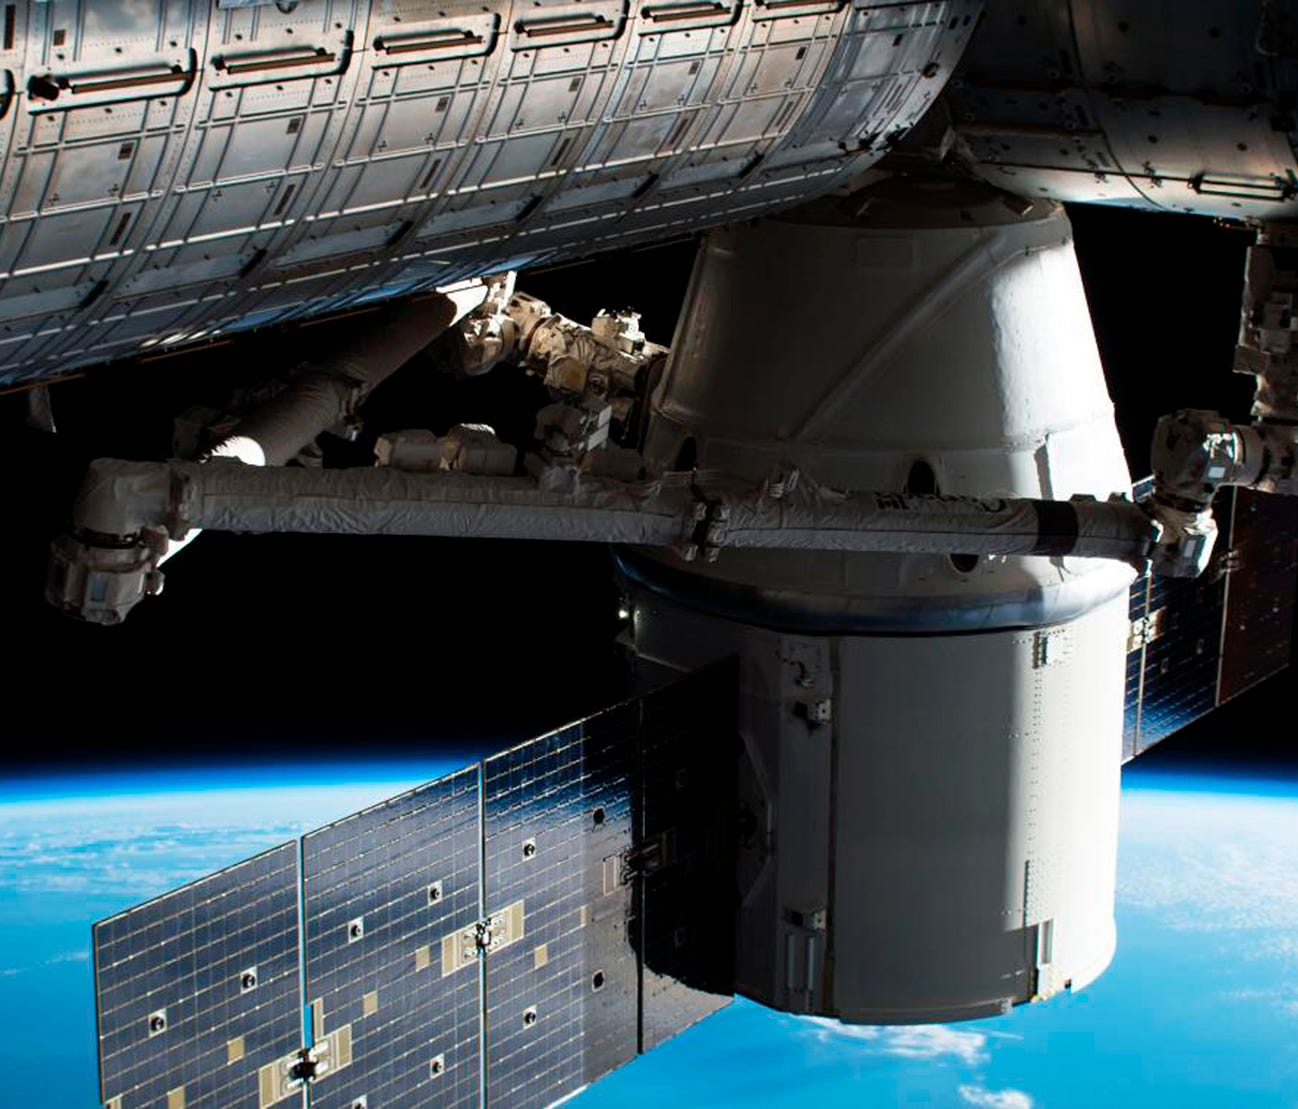 The Dragon capsule arrives at the International Space Station on Wednesday, April 4.